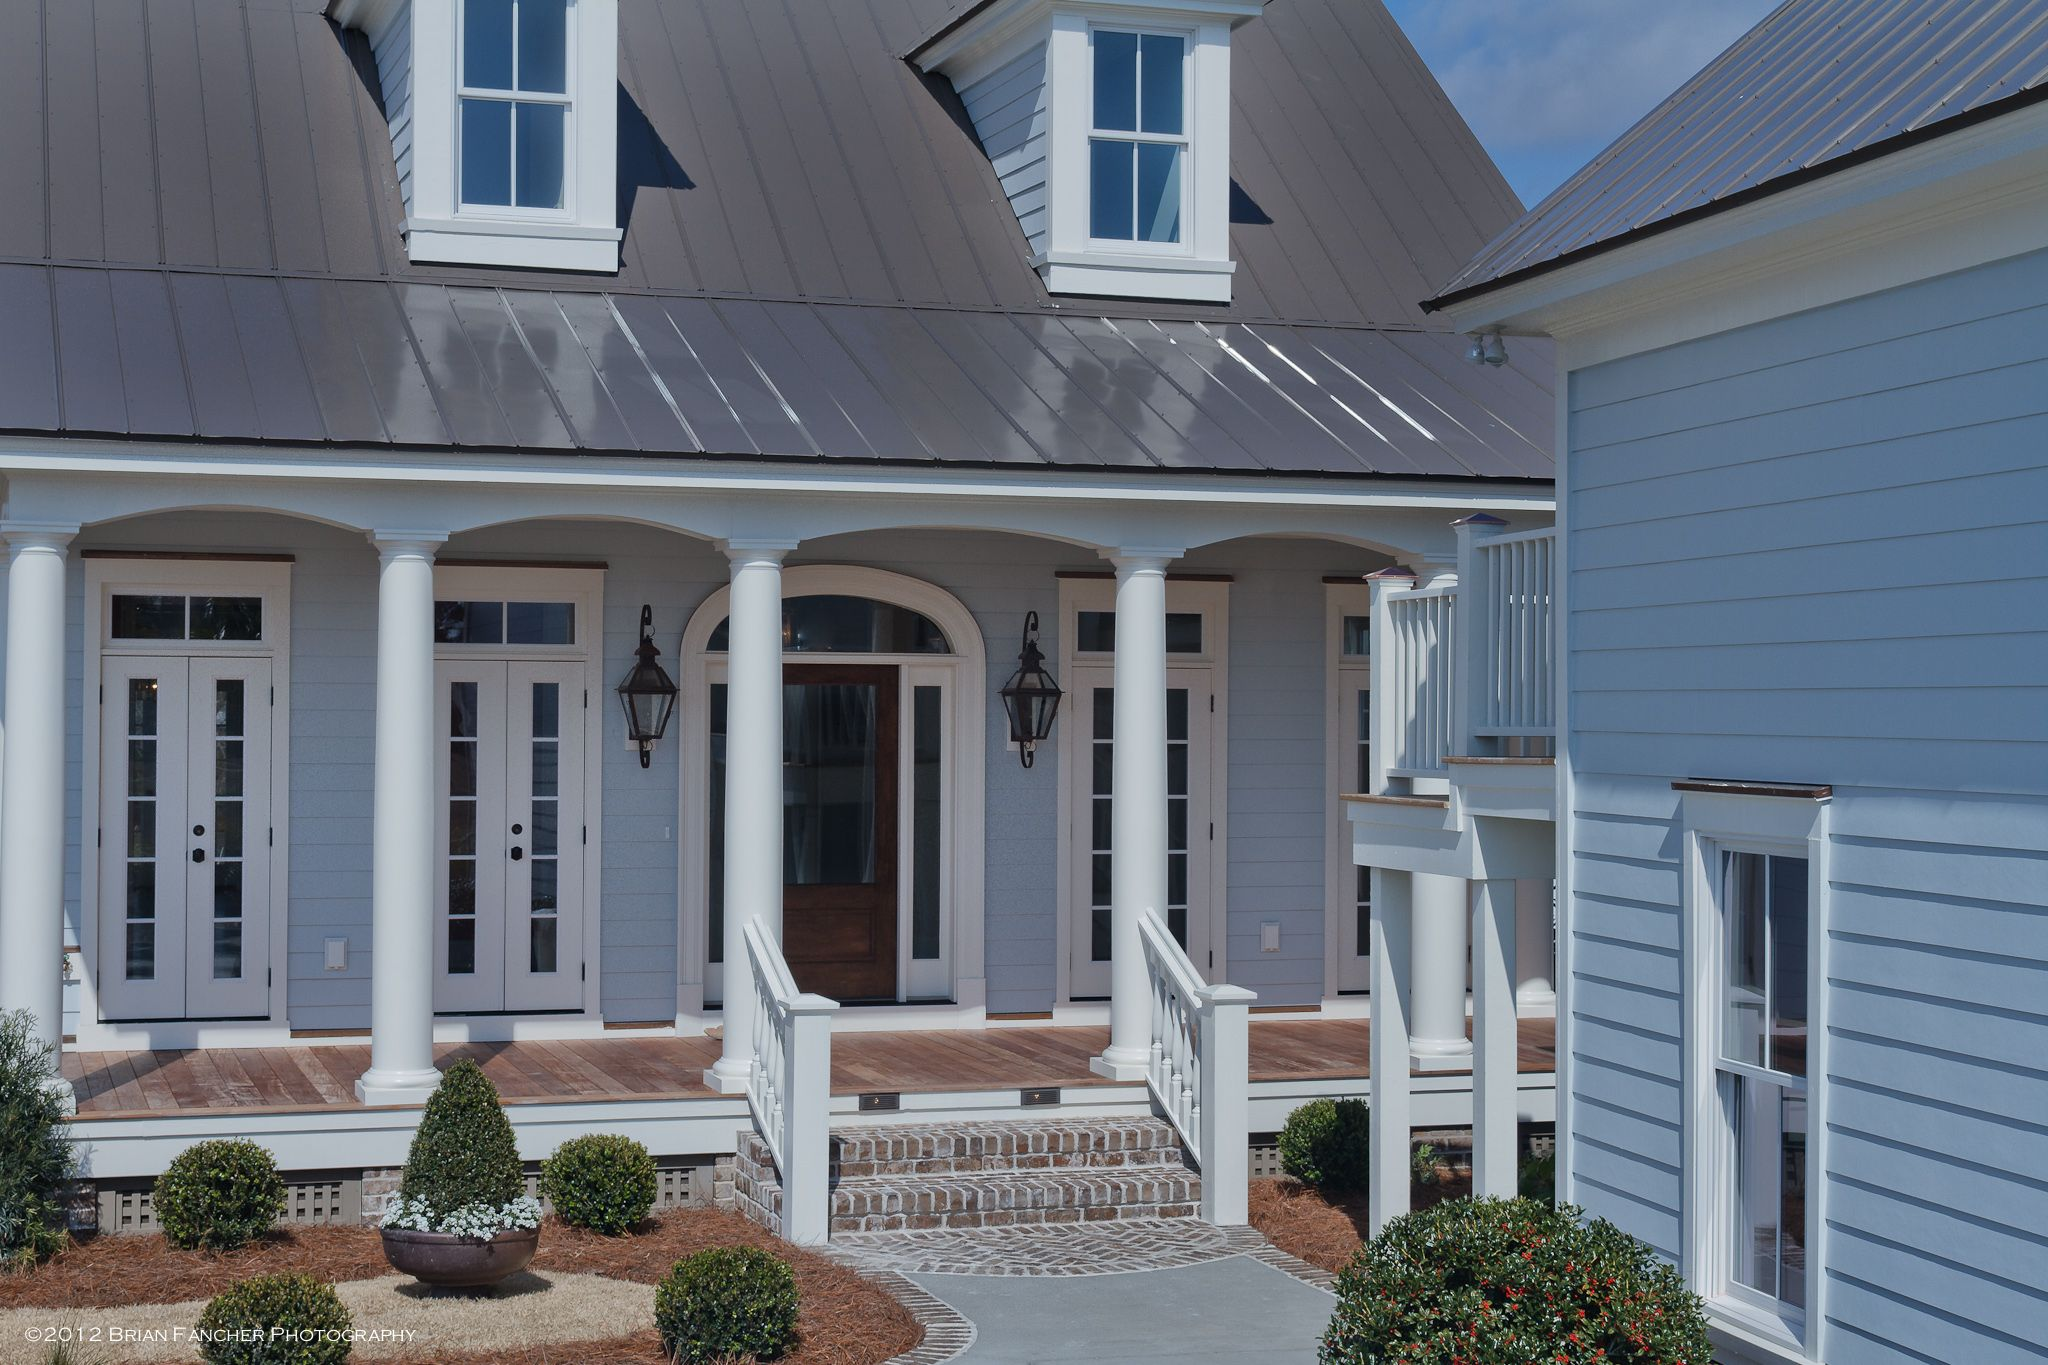 charleston home design%0A This plan is      Heated Square Feet    Bedrooms and   Bathrooms  Carolina  Inspirations  Book III  Page     C      Interior design